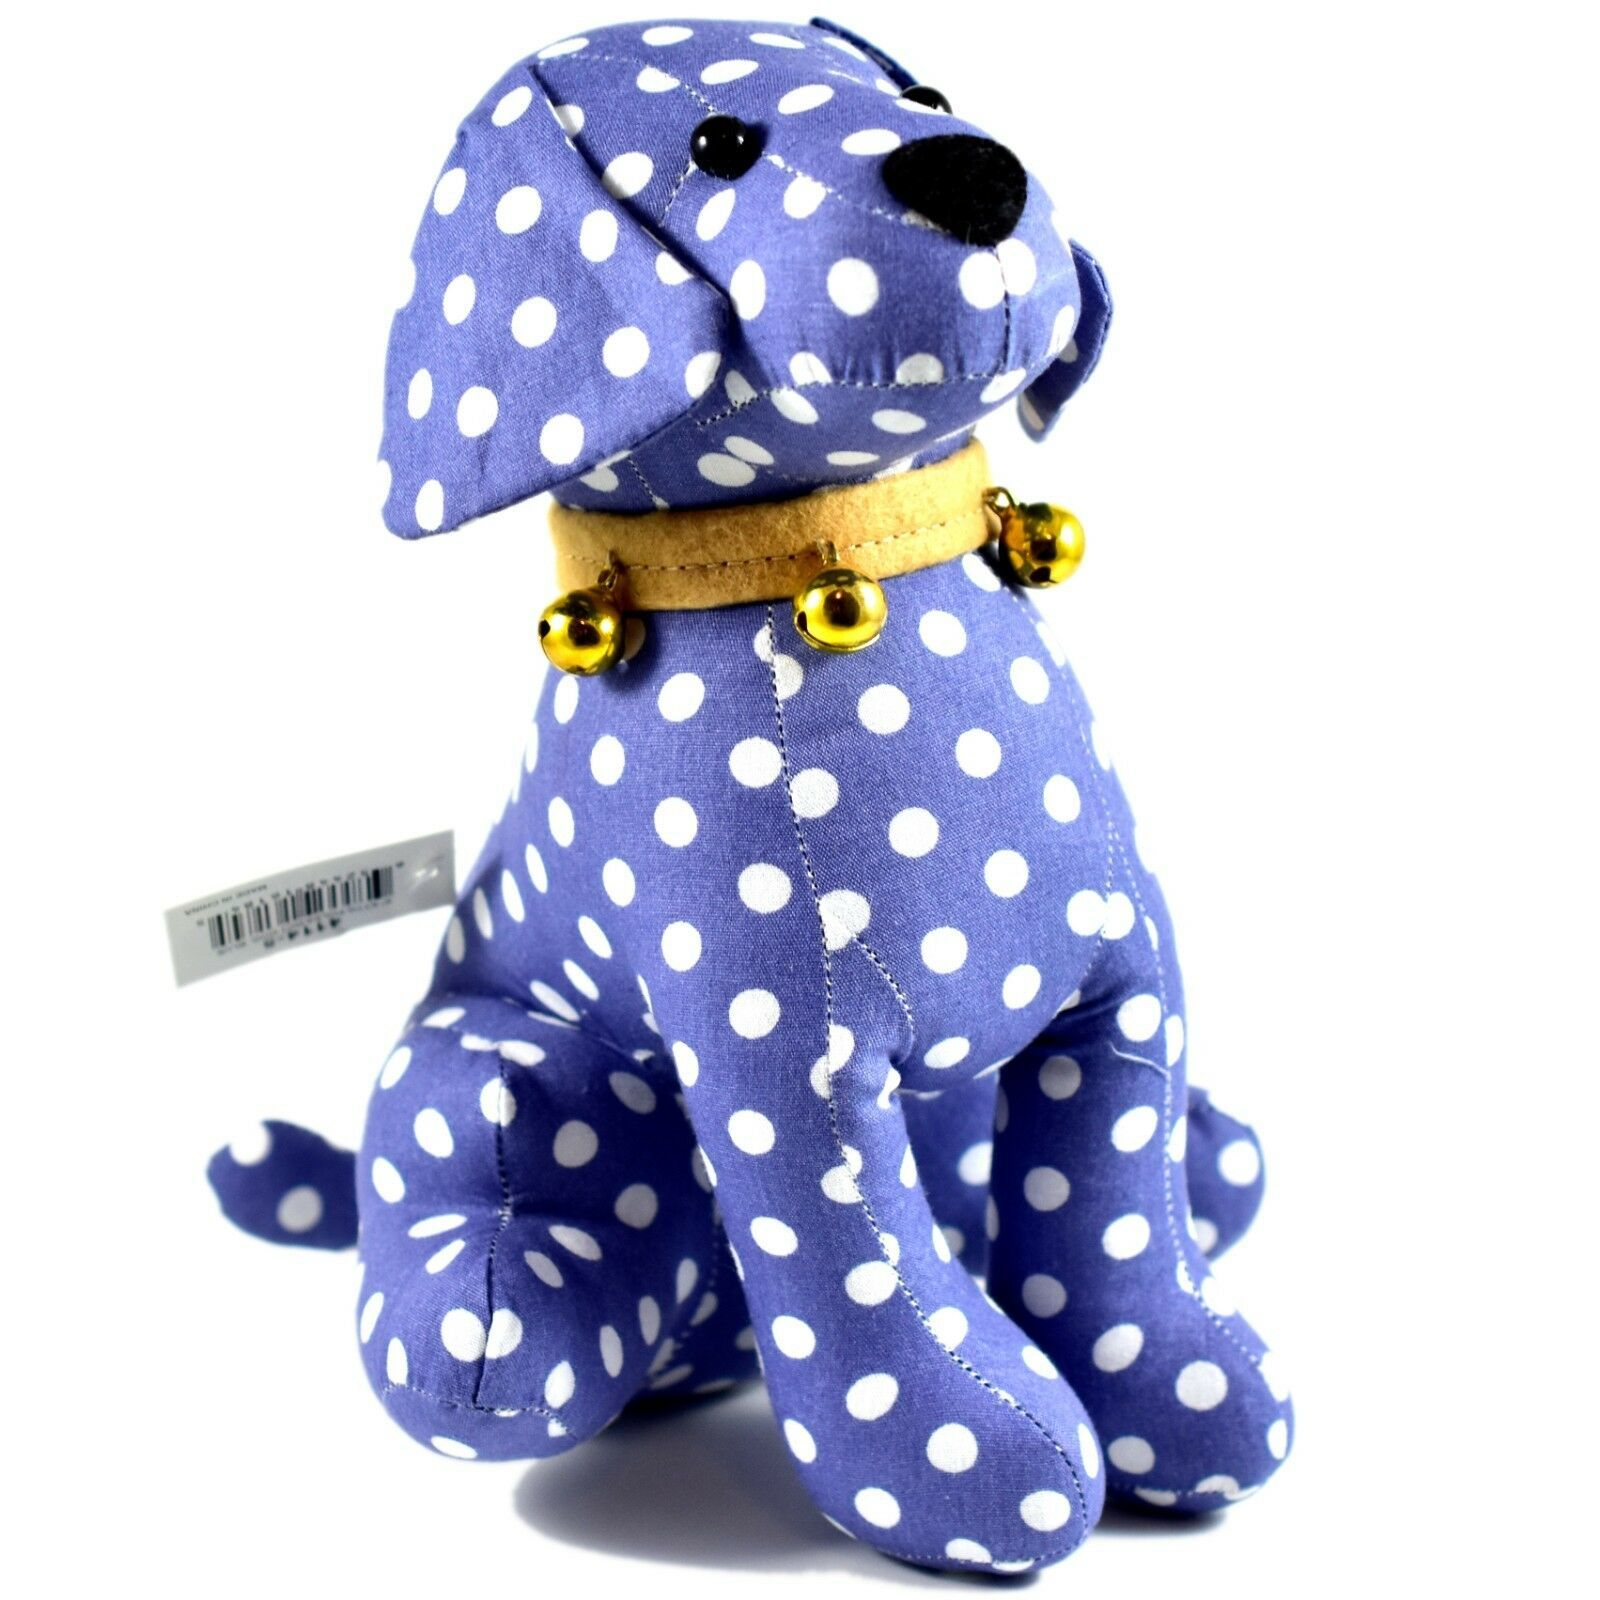 Delton Blue Polka Dot Fabric Puppy Dog Jingle Bell Small Door Stopper Doorstop